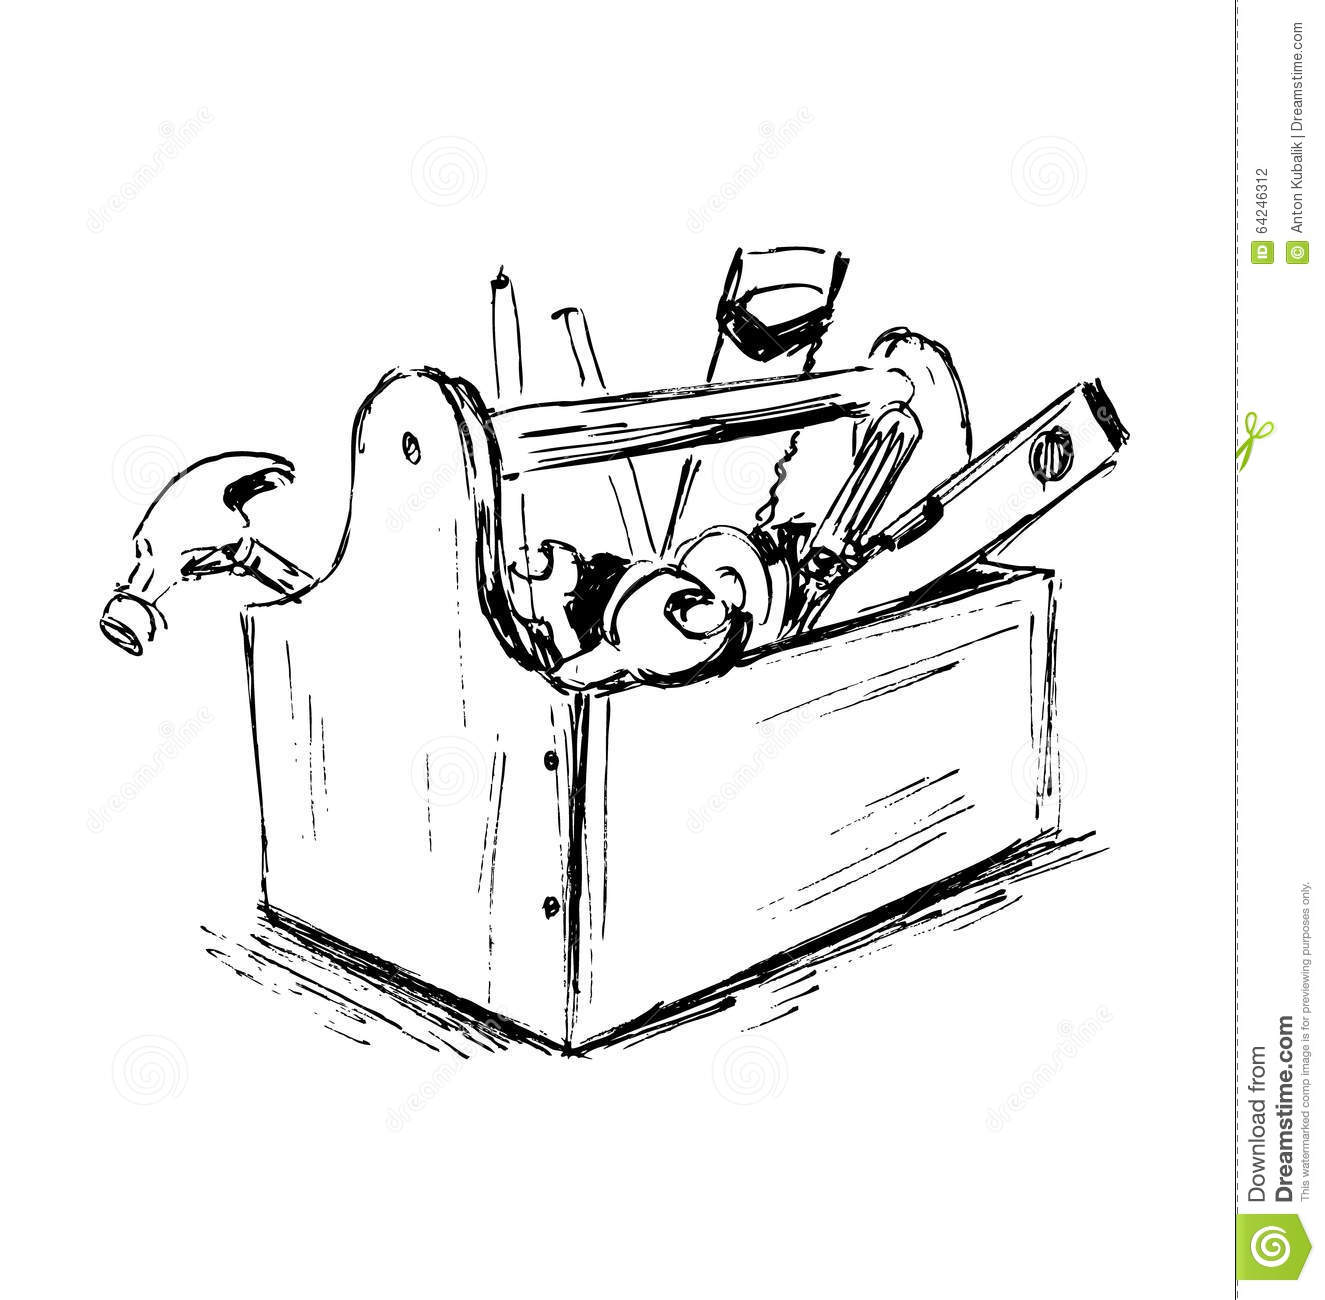 Hand Sketch The Box With Tools Stock Vector